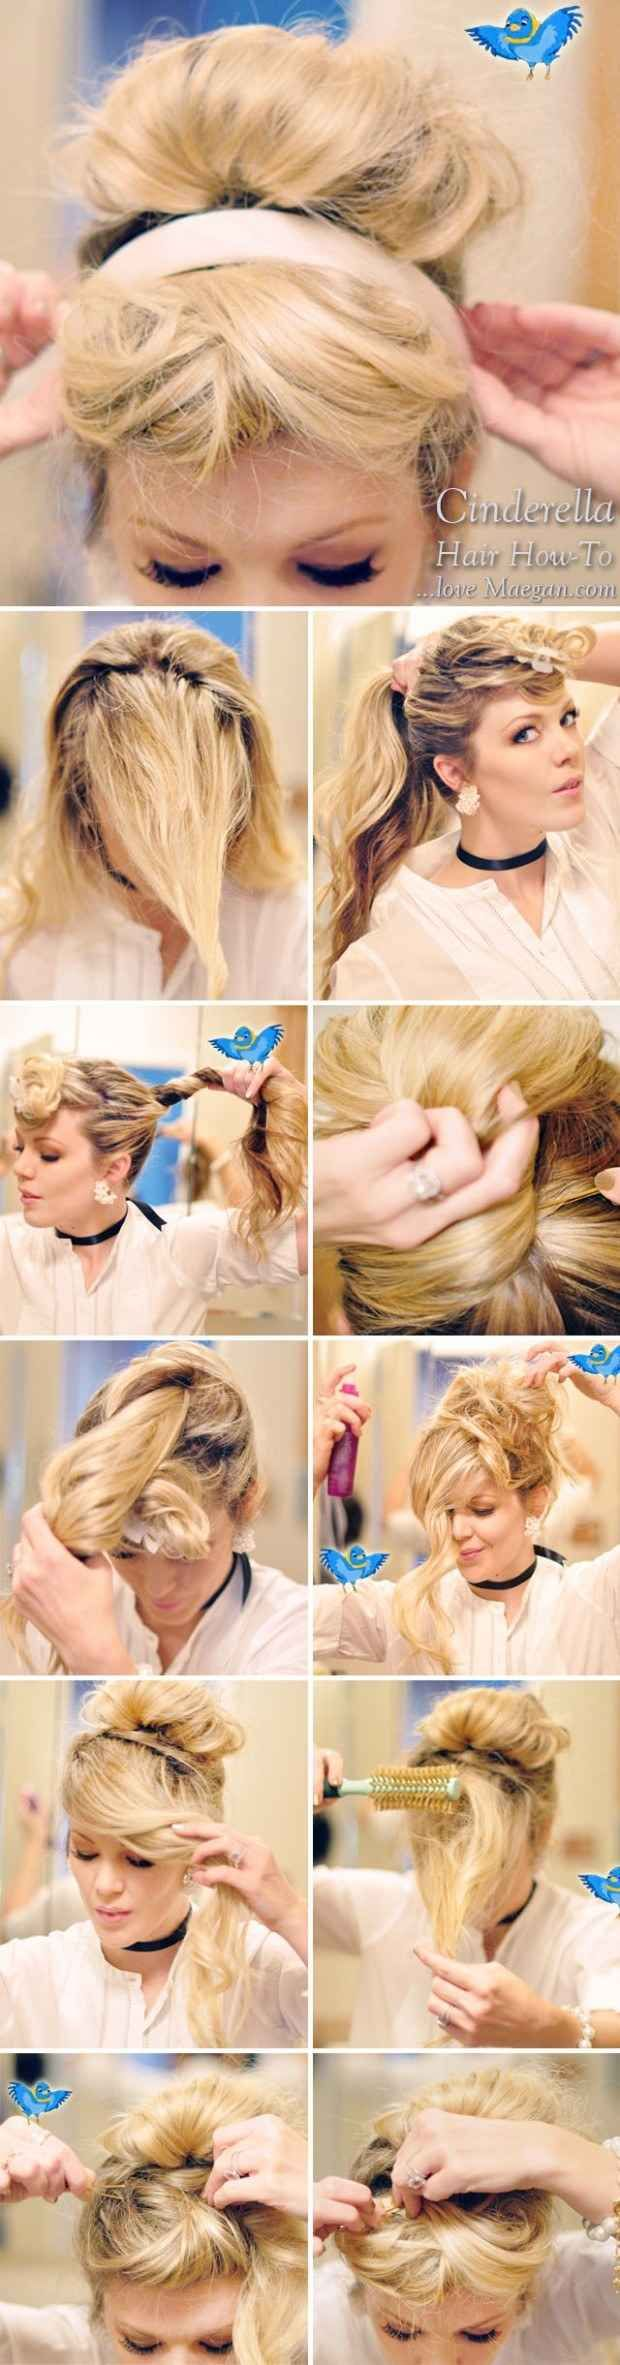 Easy How-To Disney Princess Hair